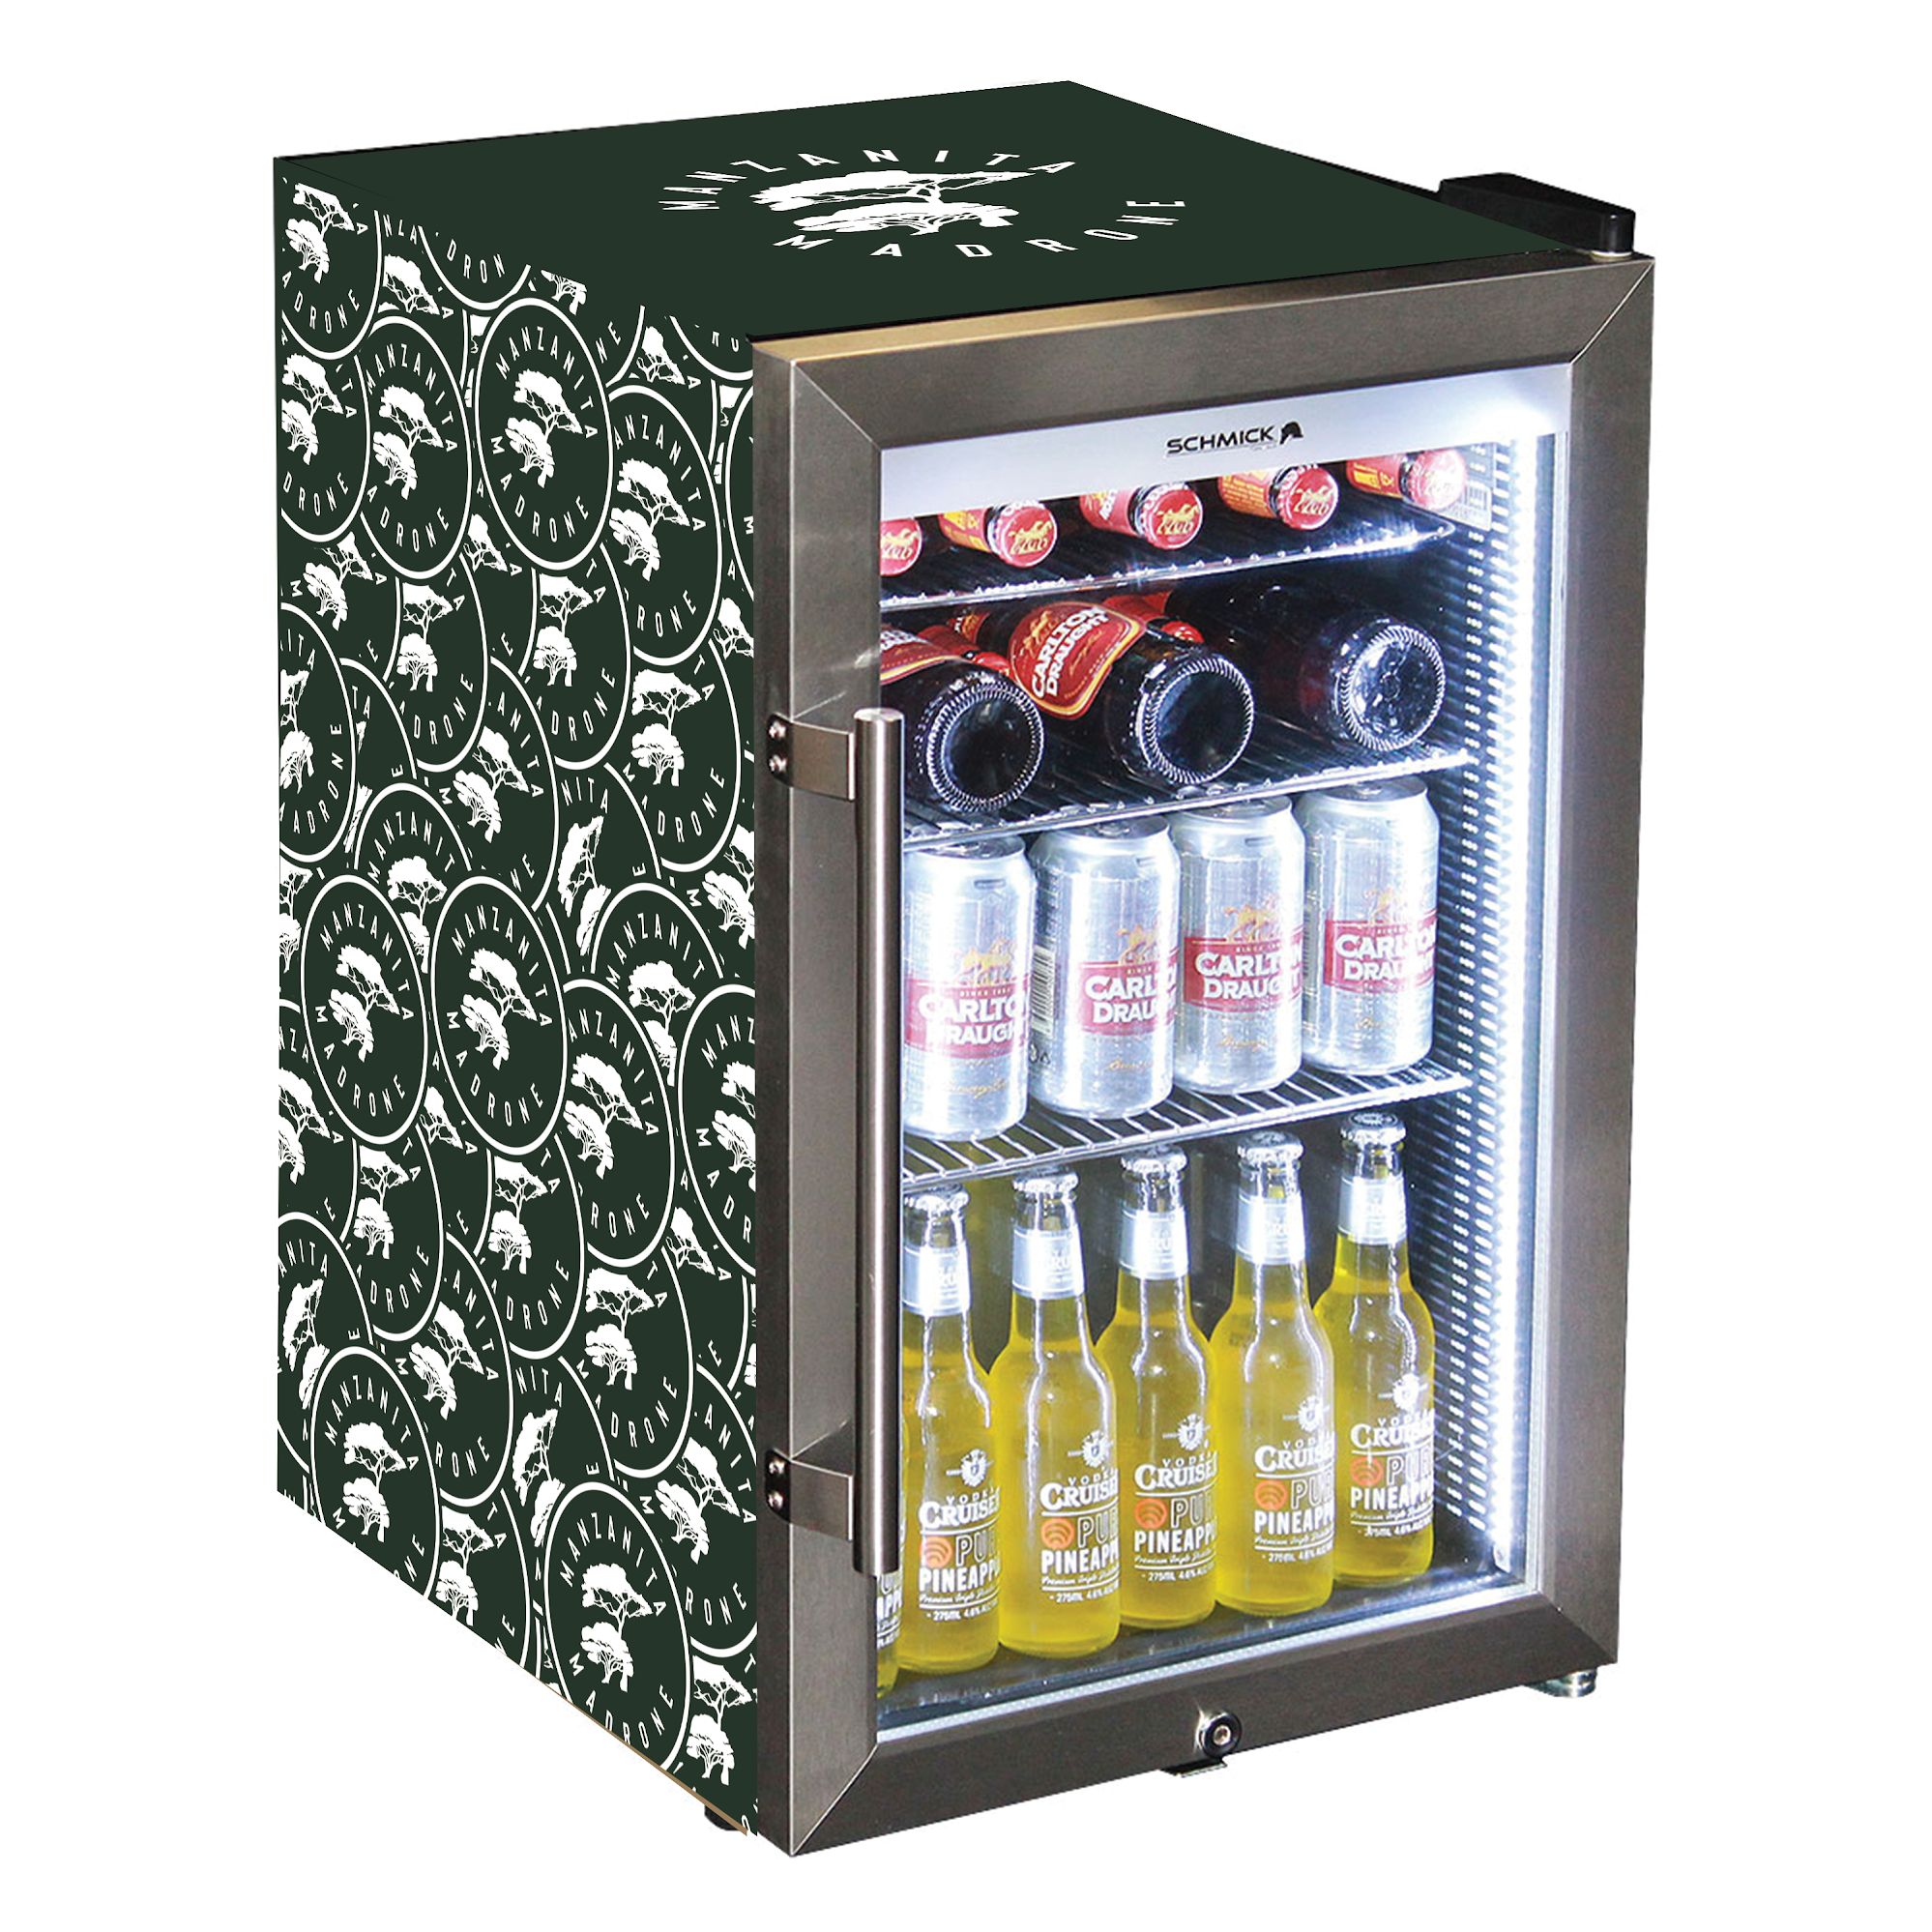 Manzanita and Madrone Mini Fridge wraps